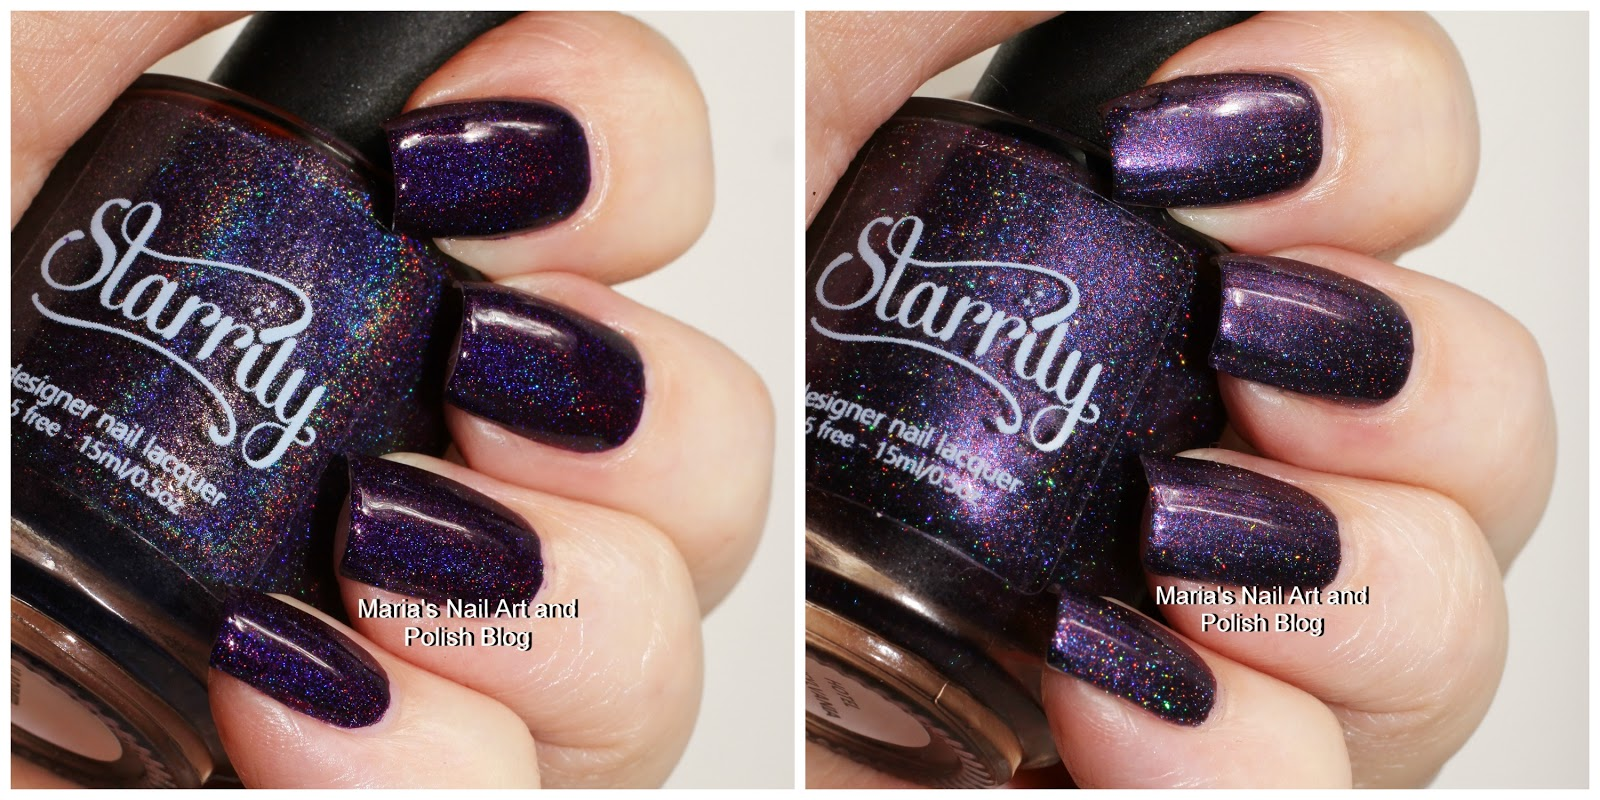 Today I Have Two Of The Bluetoned Purple Polishes From The Starrily  Vampire Inspired Welcome To Transylvania Collection: Hotel Transylvania And  Vladimir